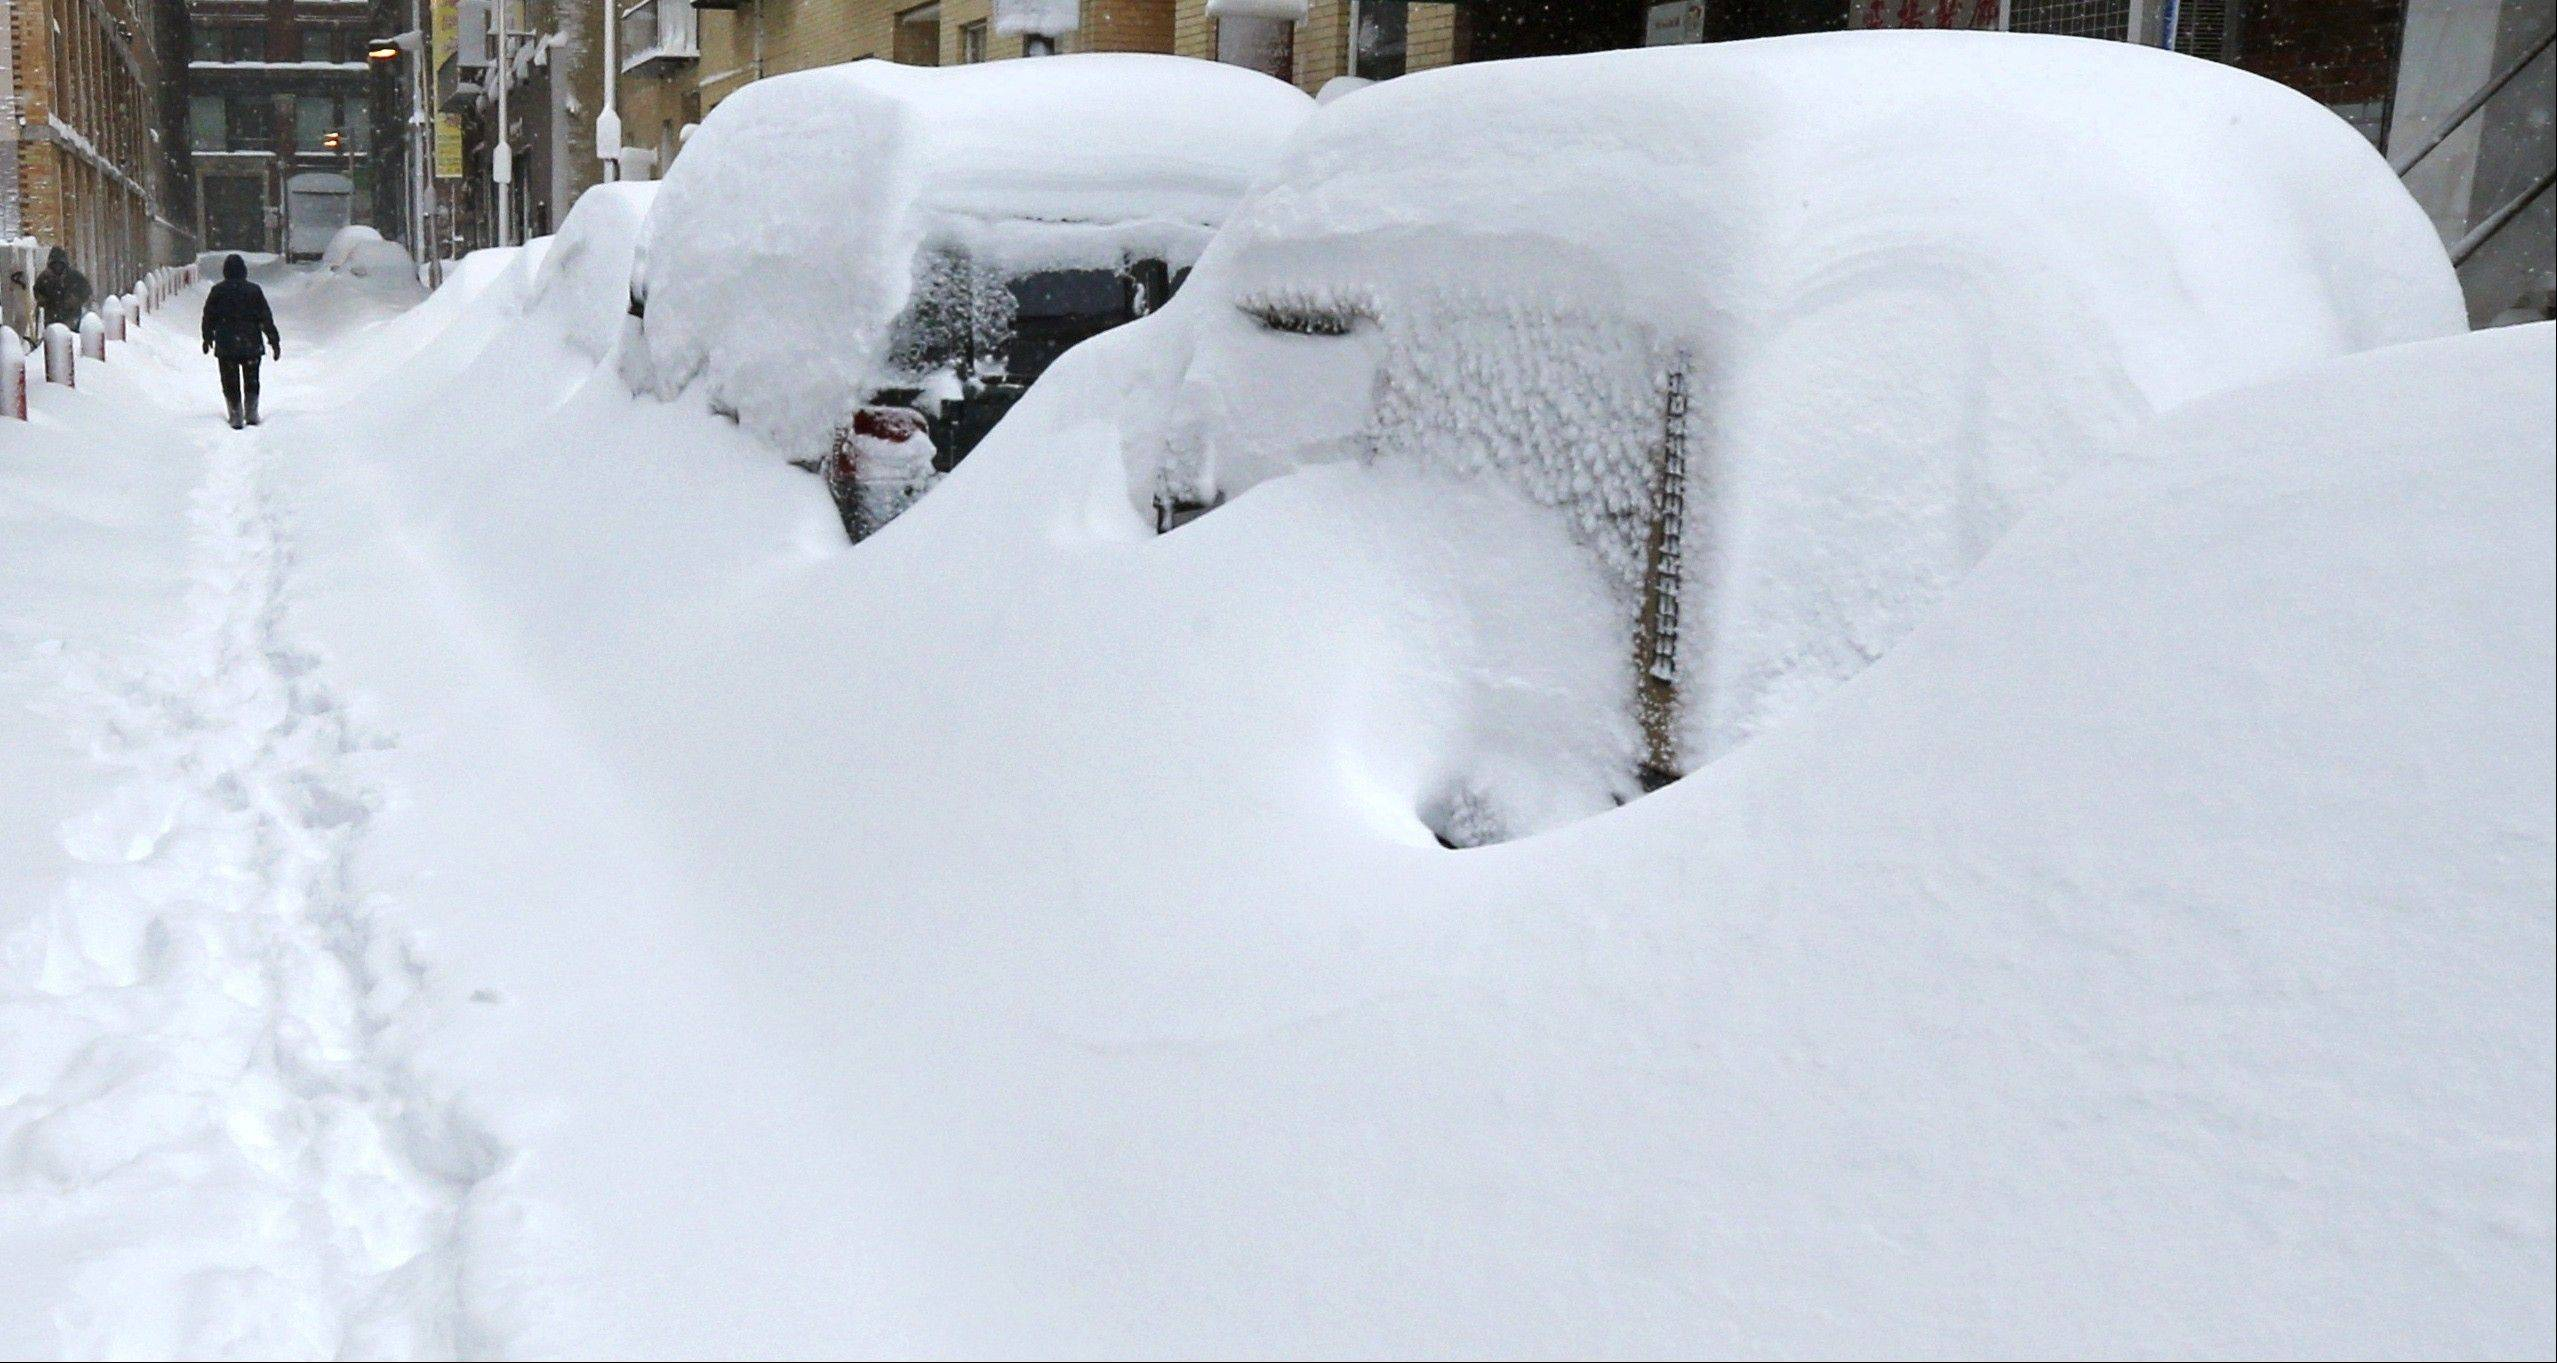 A man walks past snow covered cars in the Chinatown neighborhood of Boston, Saturday, Feb. 9, 2013. The Boston area received about two feet of snow from a winter storm.